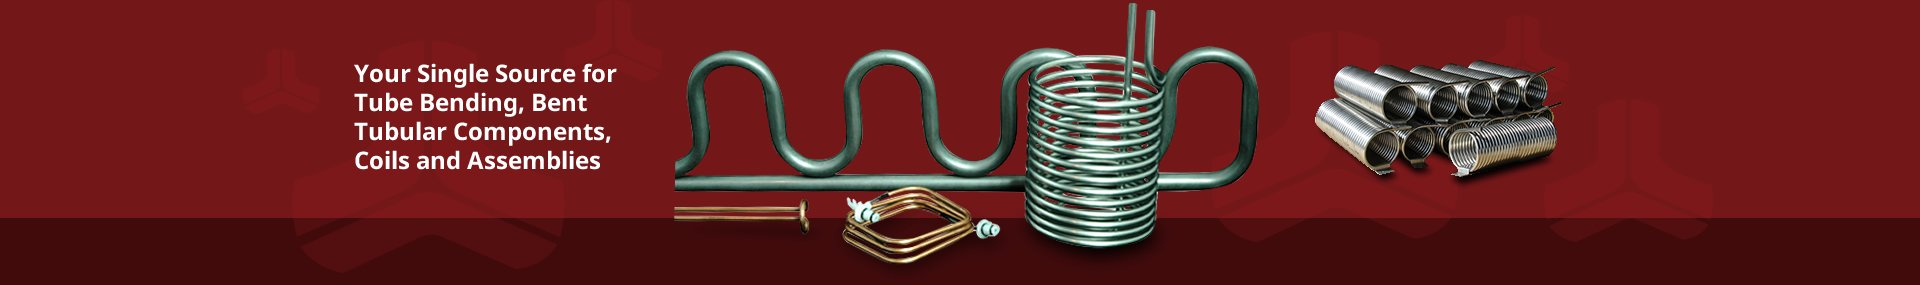 Your single source for tube bending